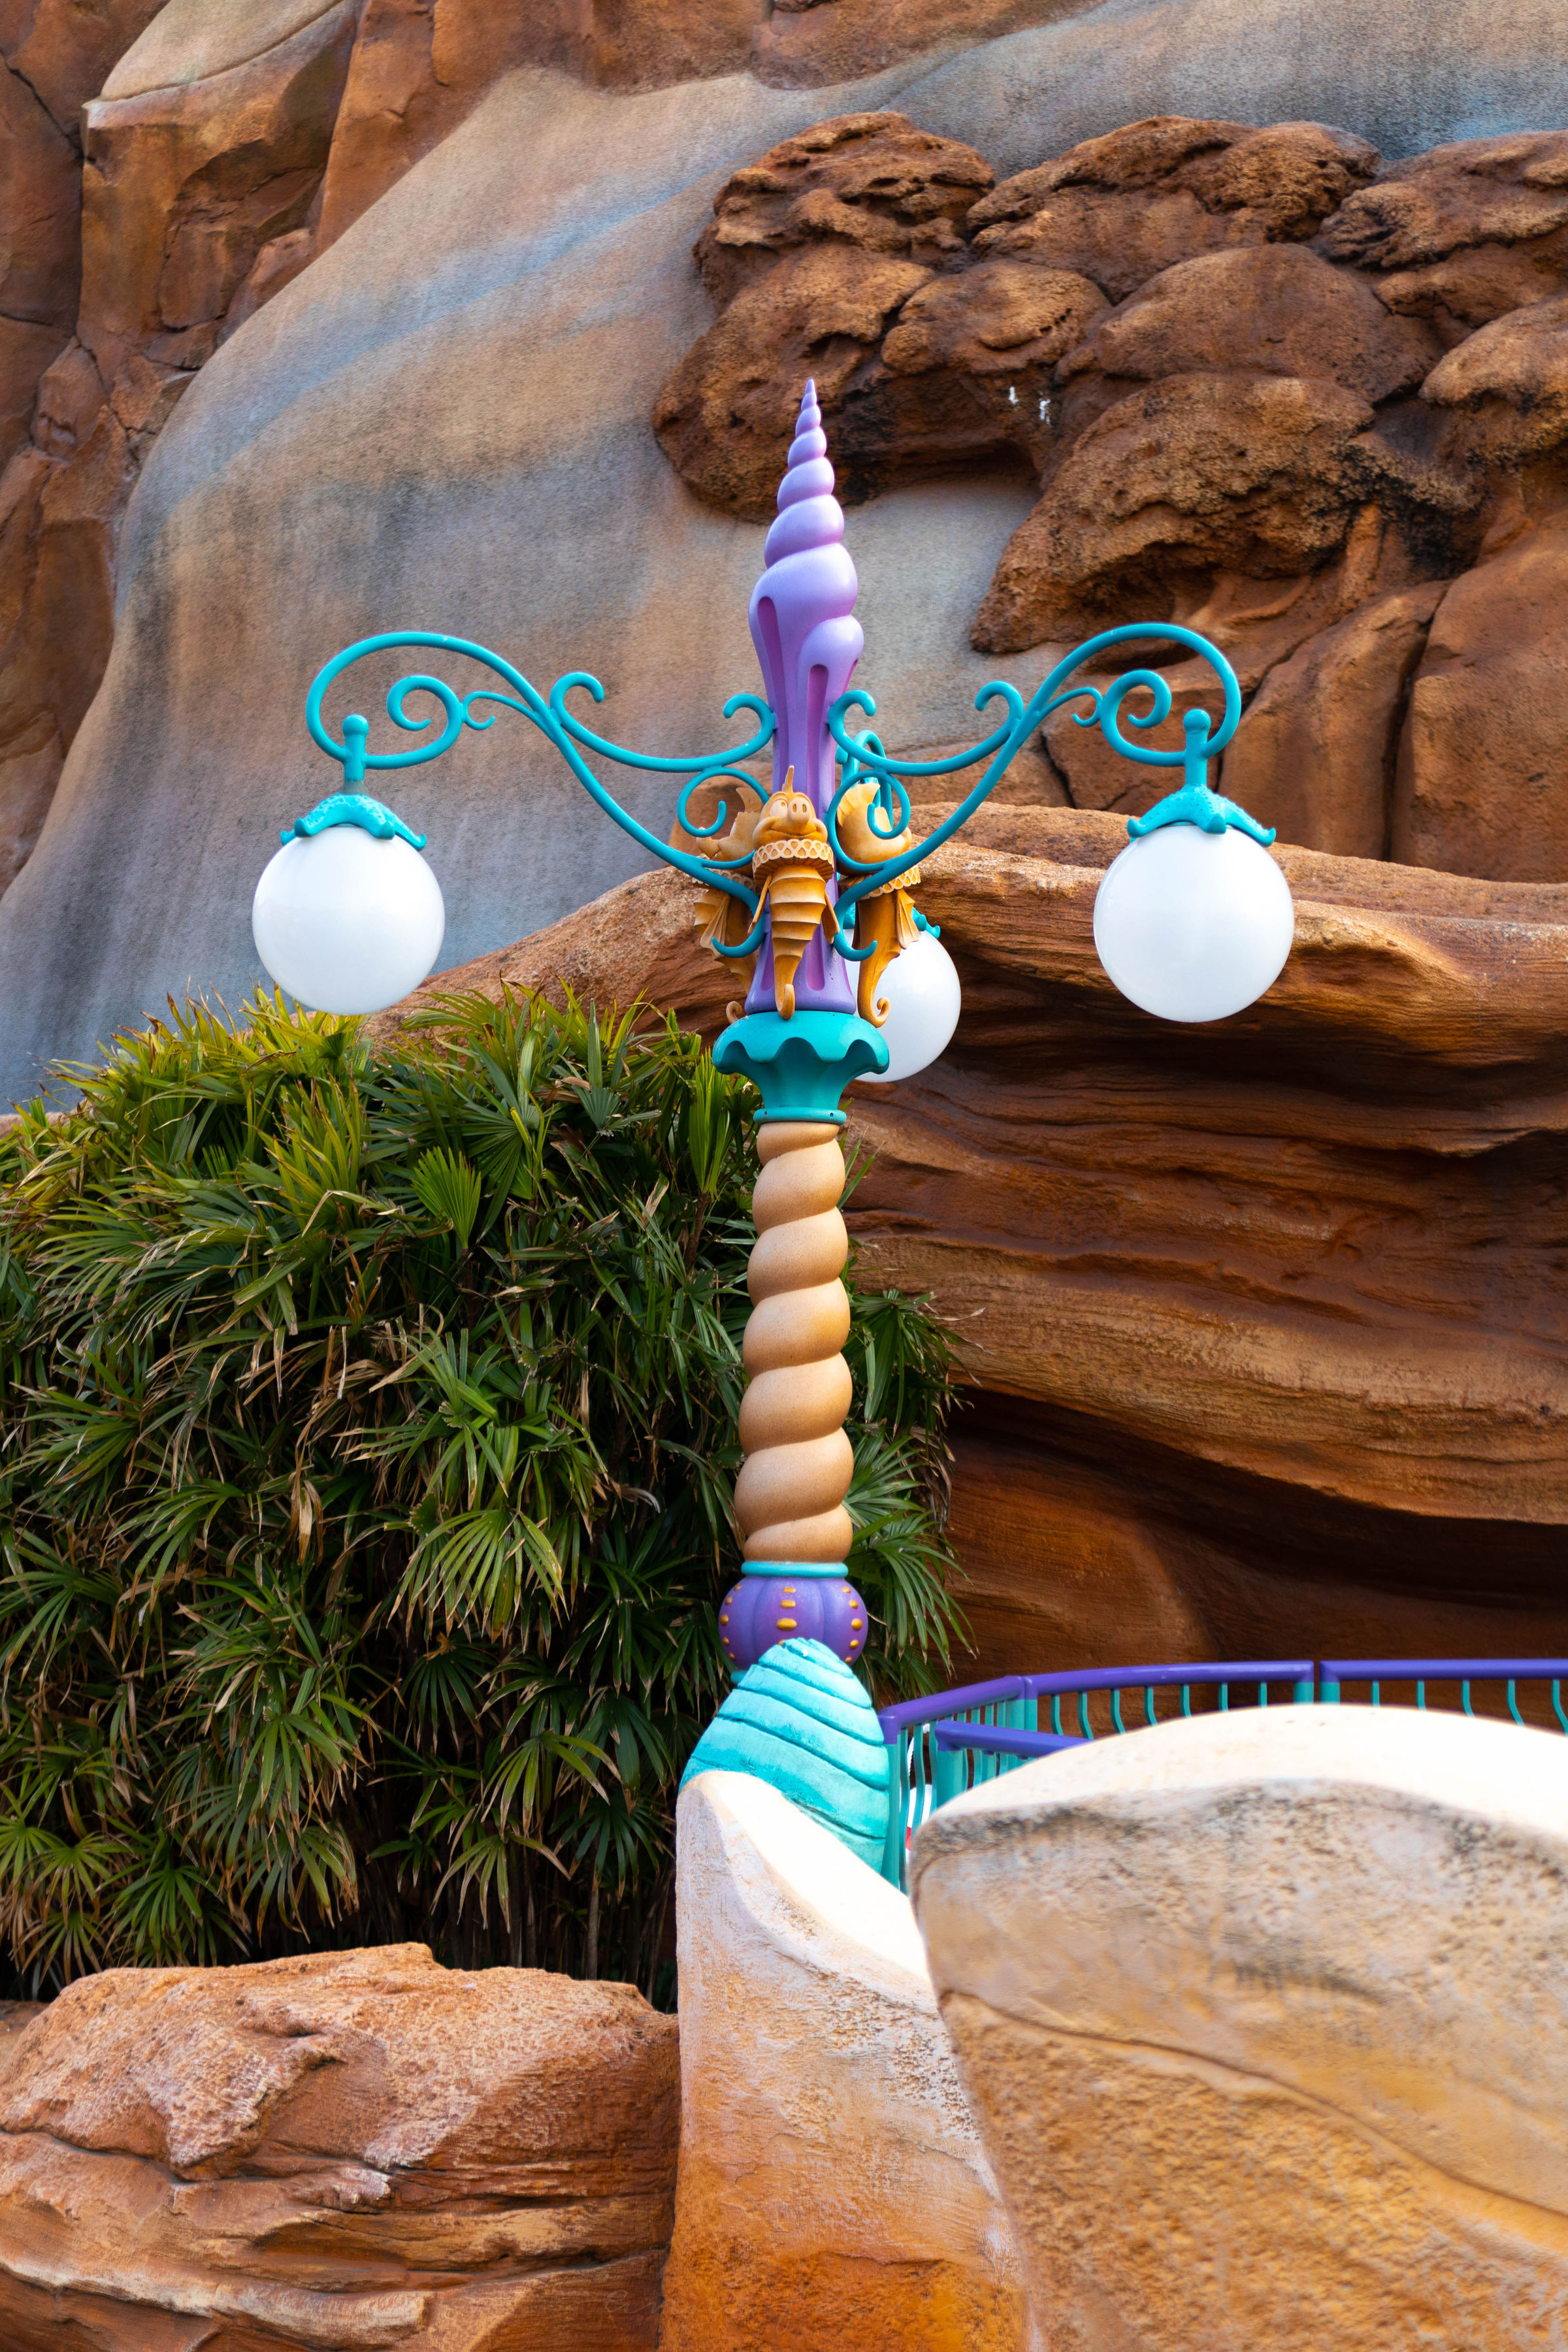 Tokyo DisneySea Travel Guide Advice for Visiting